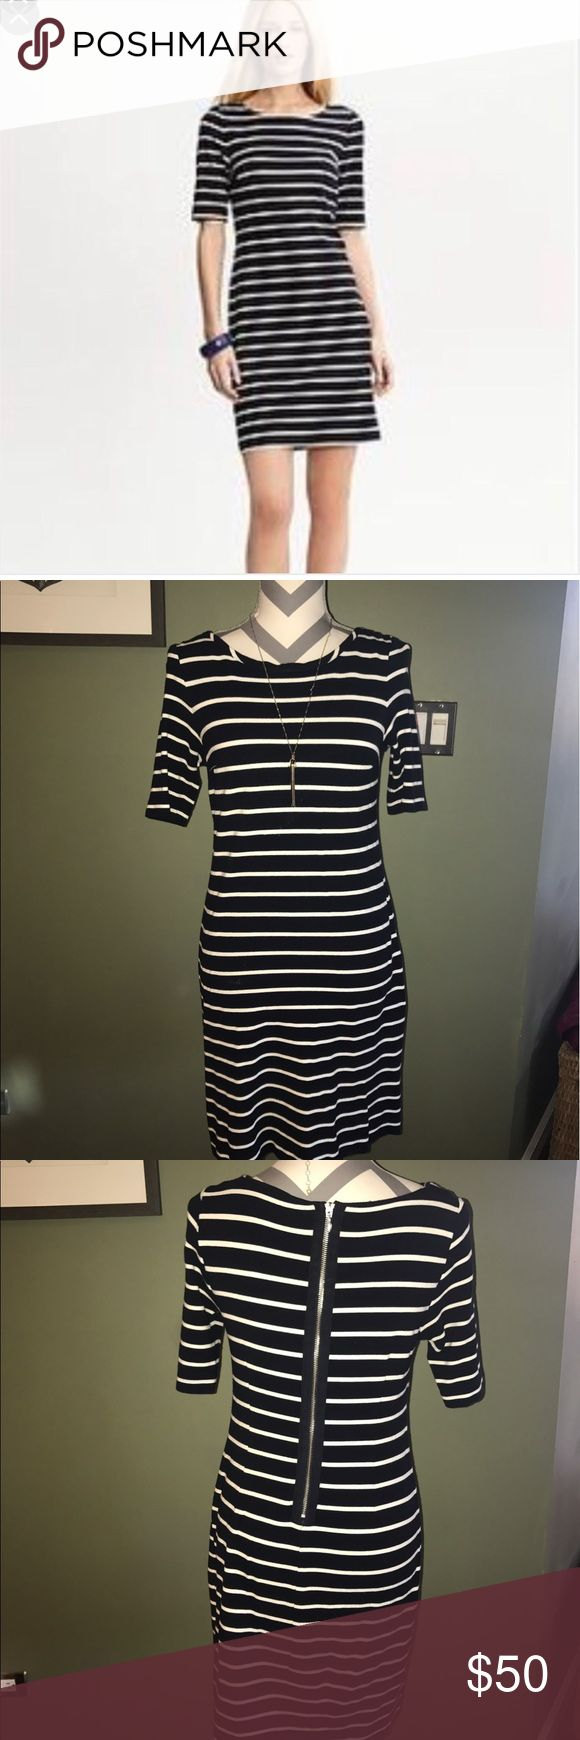 Banana Republic Navy Striped Nautical Short Dress2 Nautical navy striped dress from banana Republic. Back zip, size S.  Hit shorter above the knee.  Very cute with tan heeled sandals! Banana Republic Dresses Mini